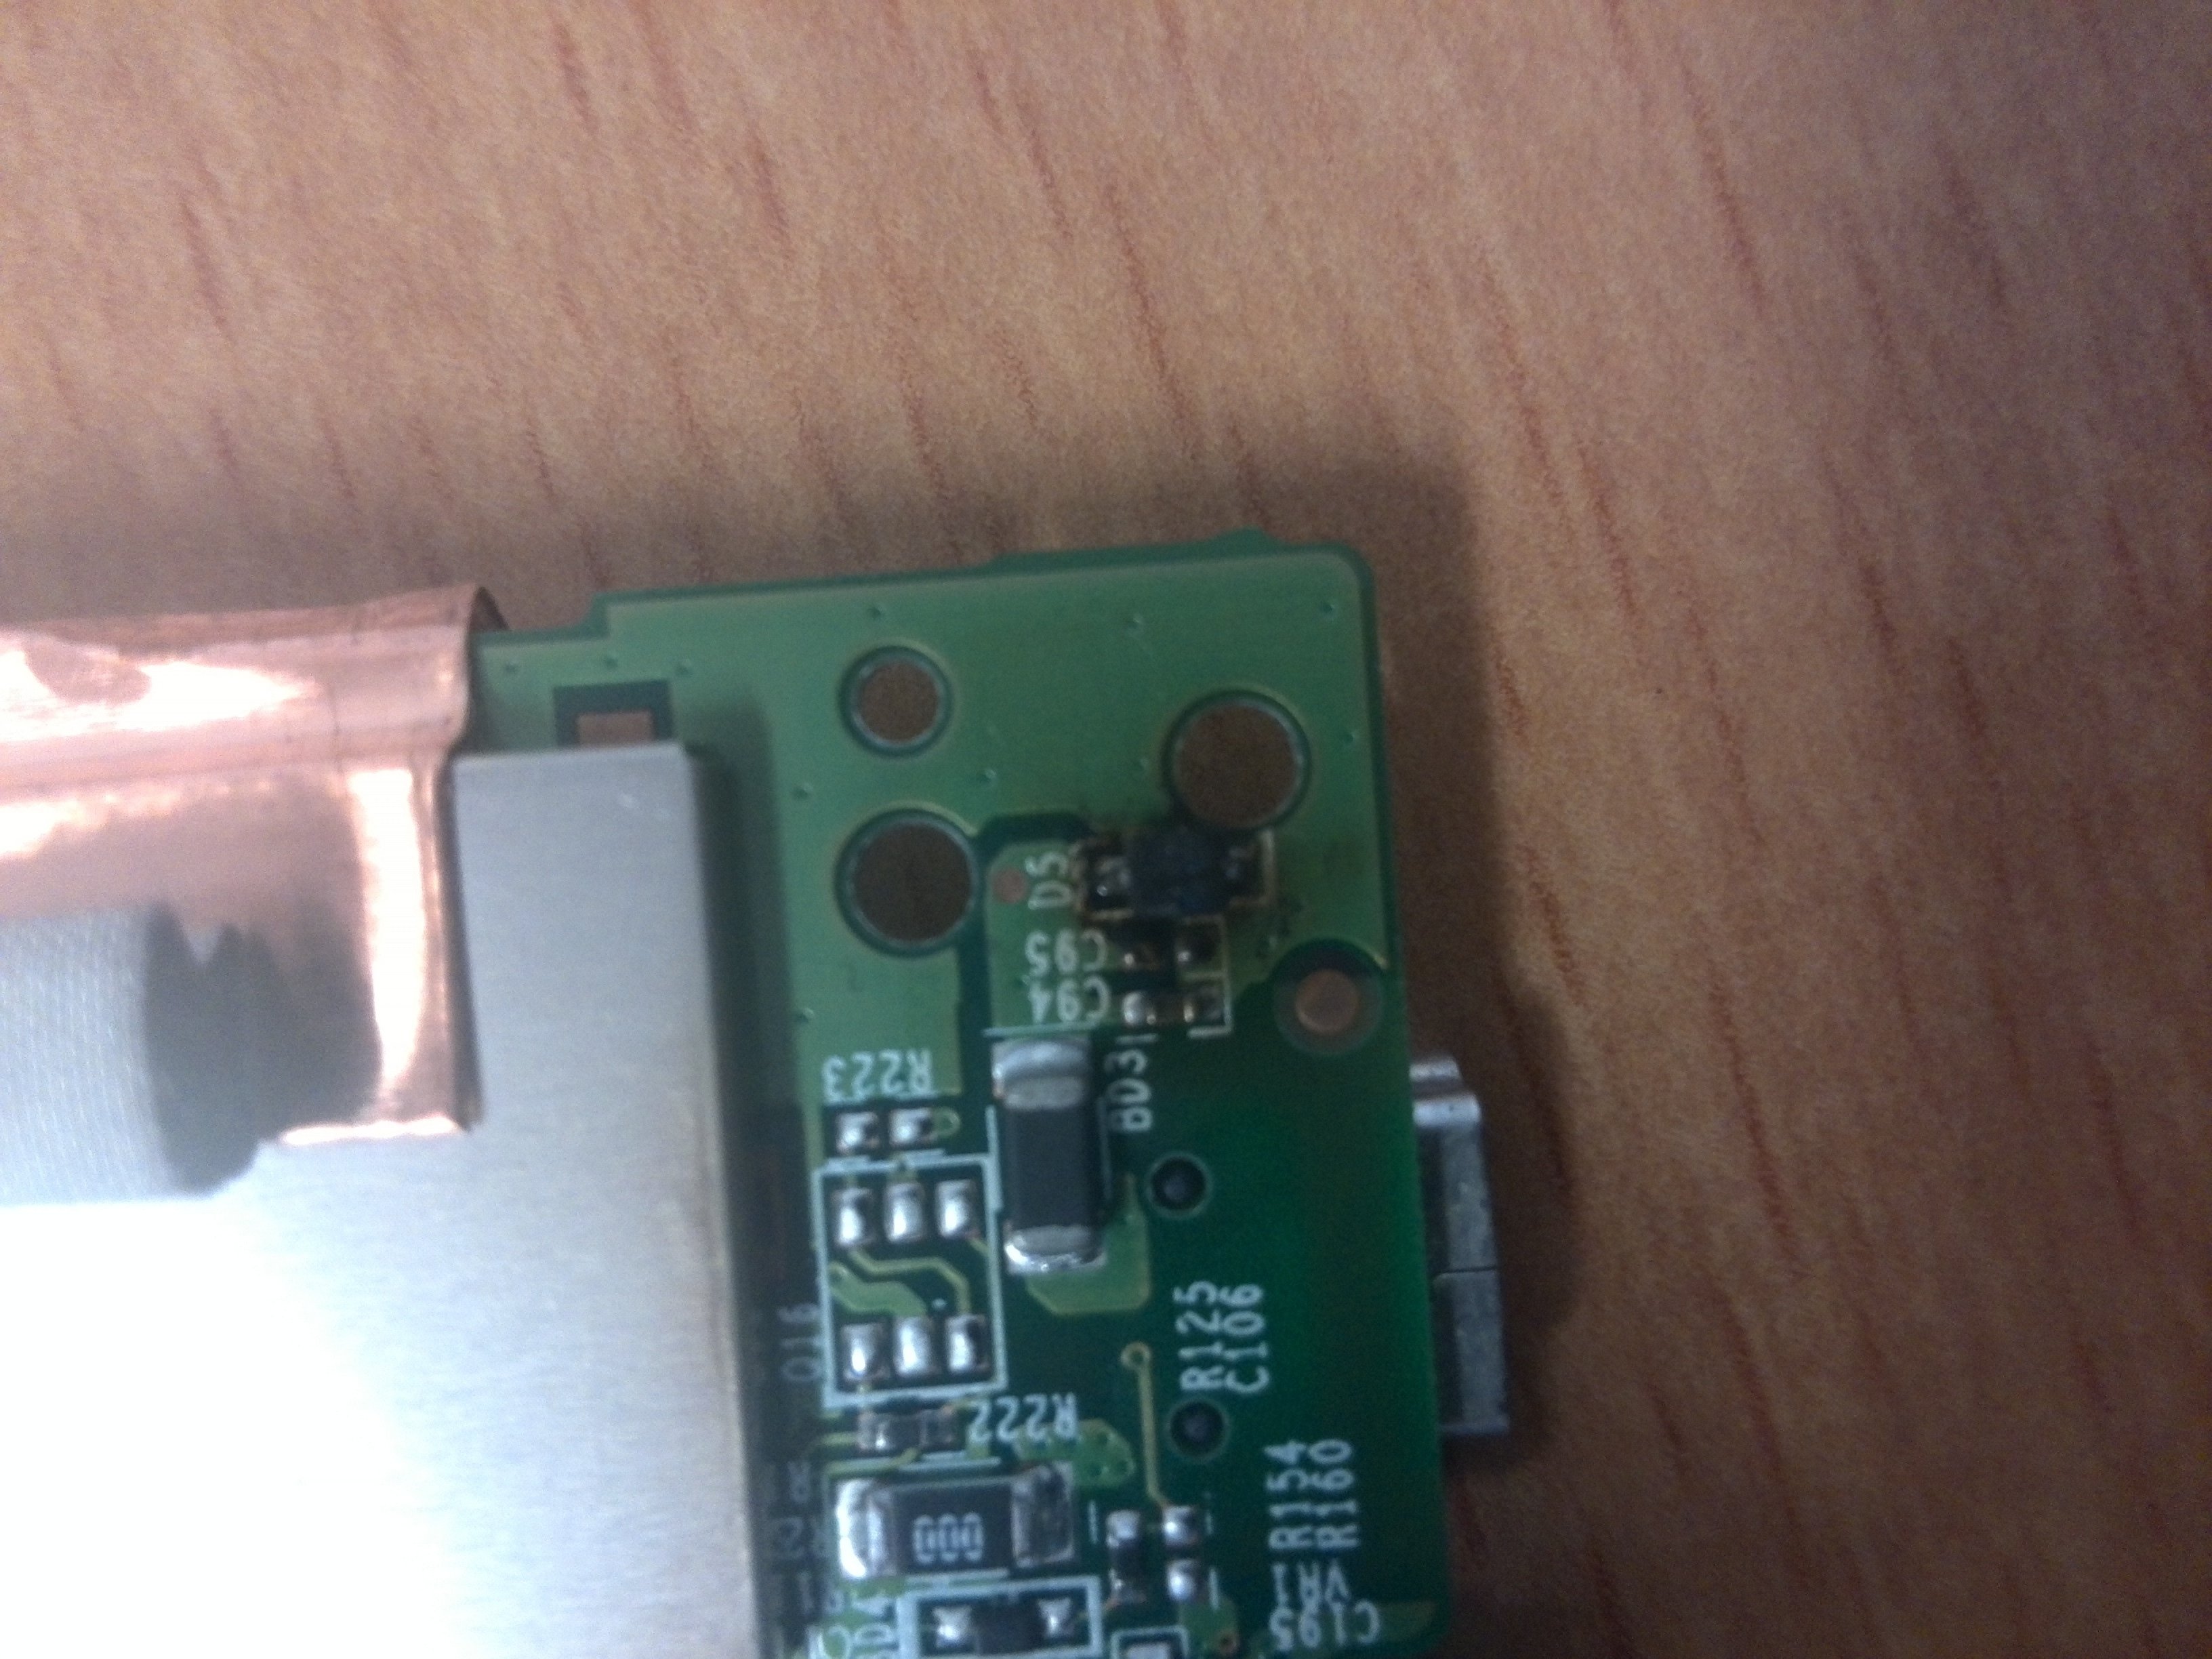 diode d5 tomtom one xl burnt   tomtom forum and community 1 attachment